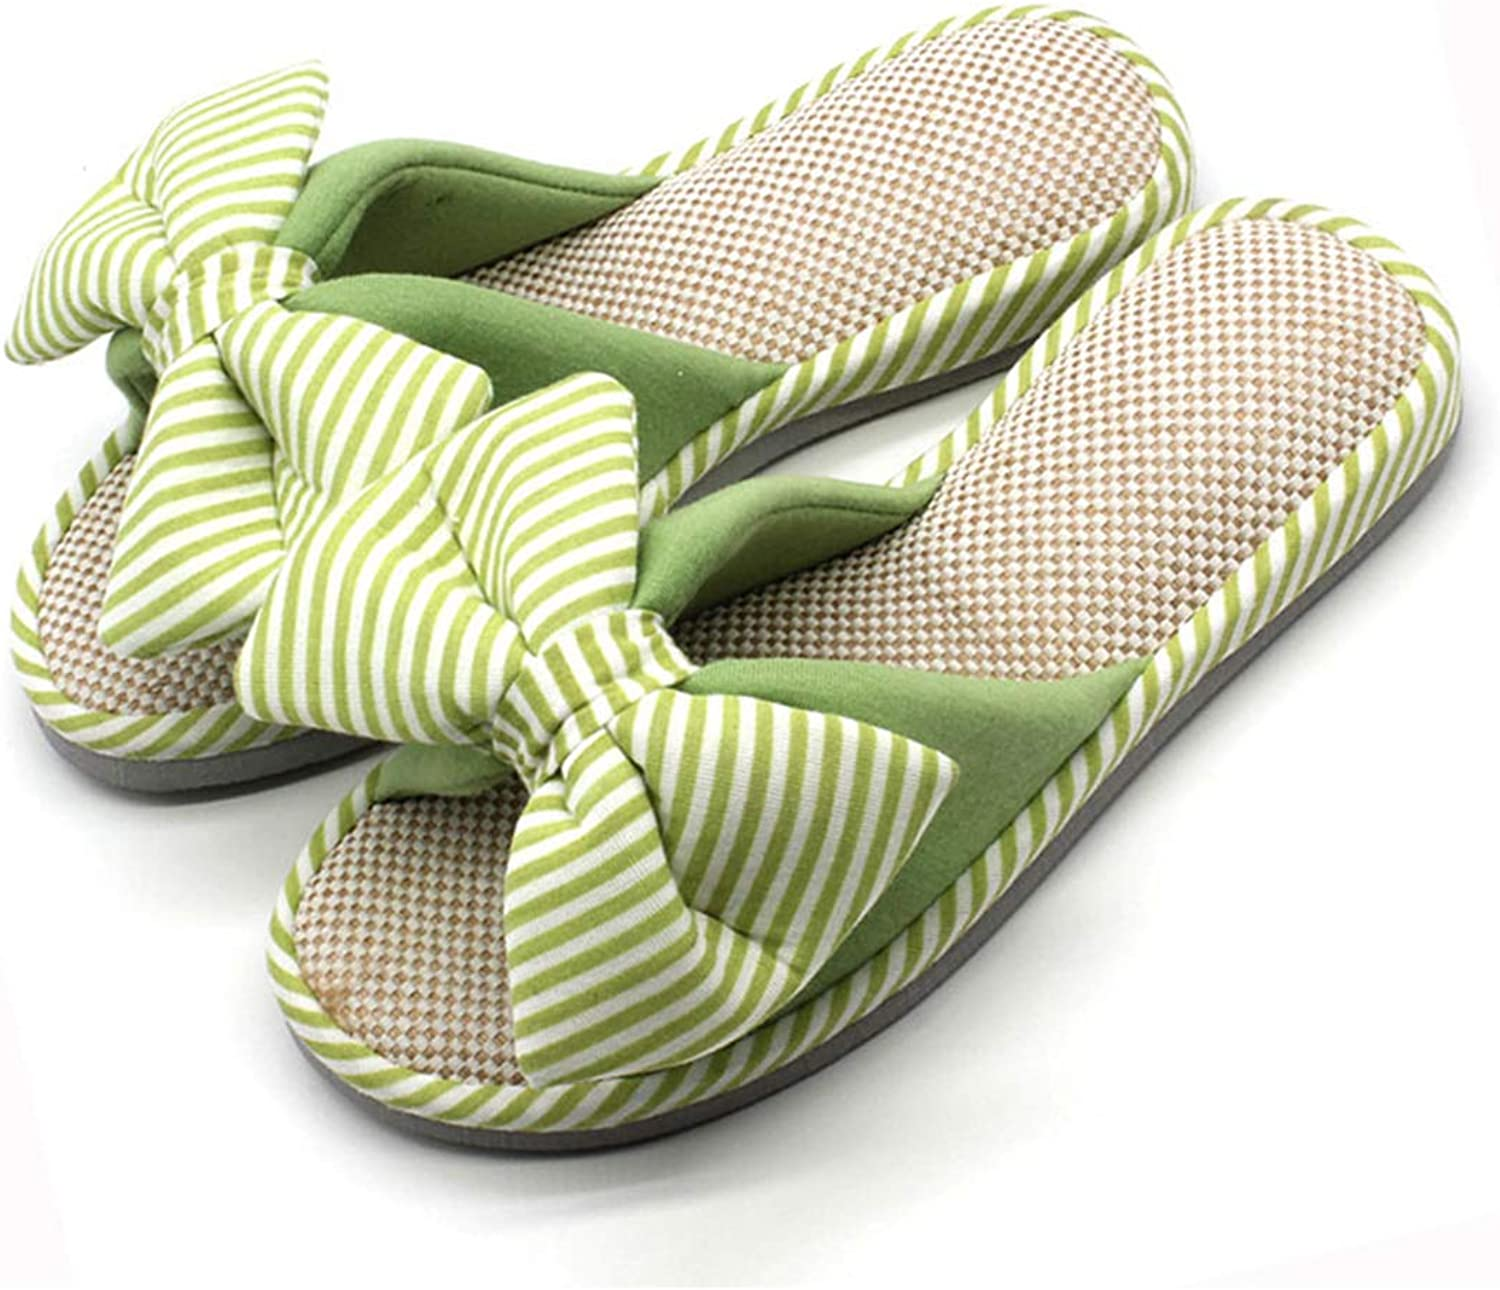 SANOMY Womens Warm Slippers Candy color Bowtie Flats Flax Cotton Floor shoes for Winter Indoor Home